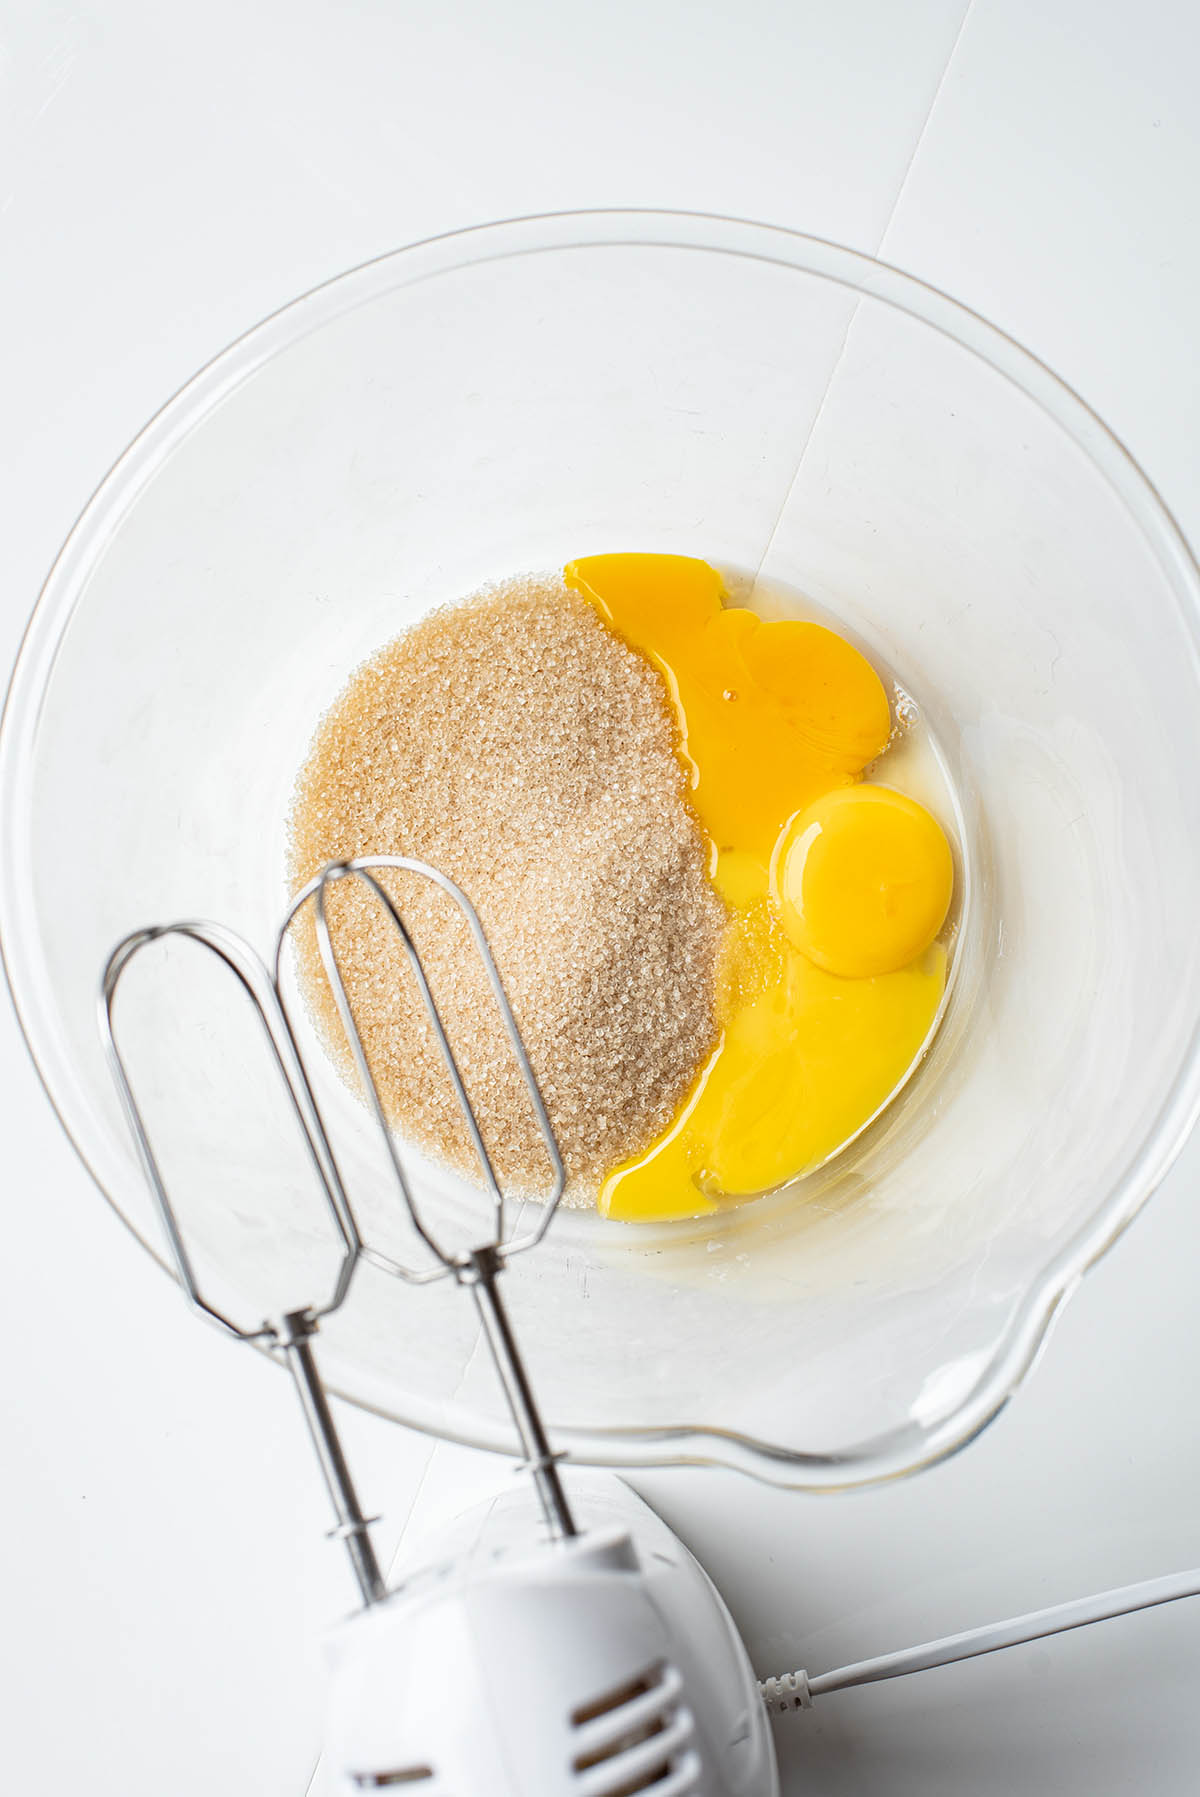 Egg yolks and sugar in a large glass bowl.